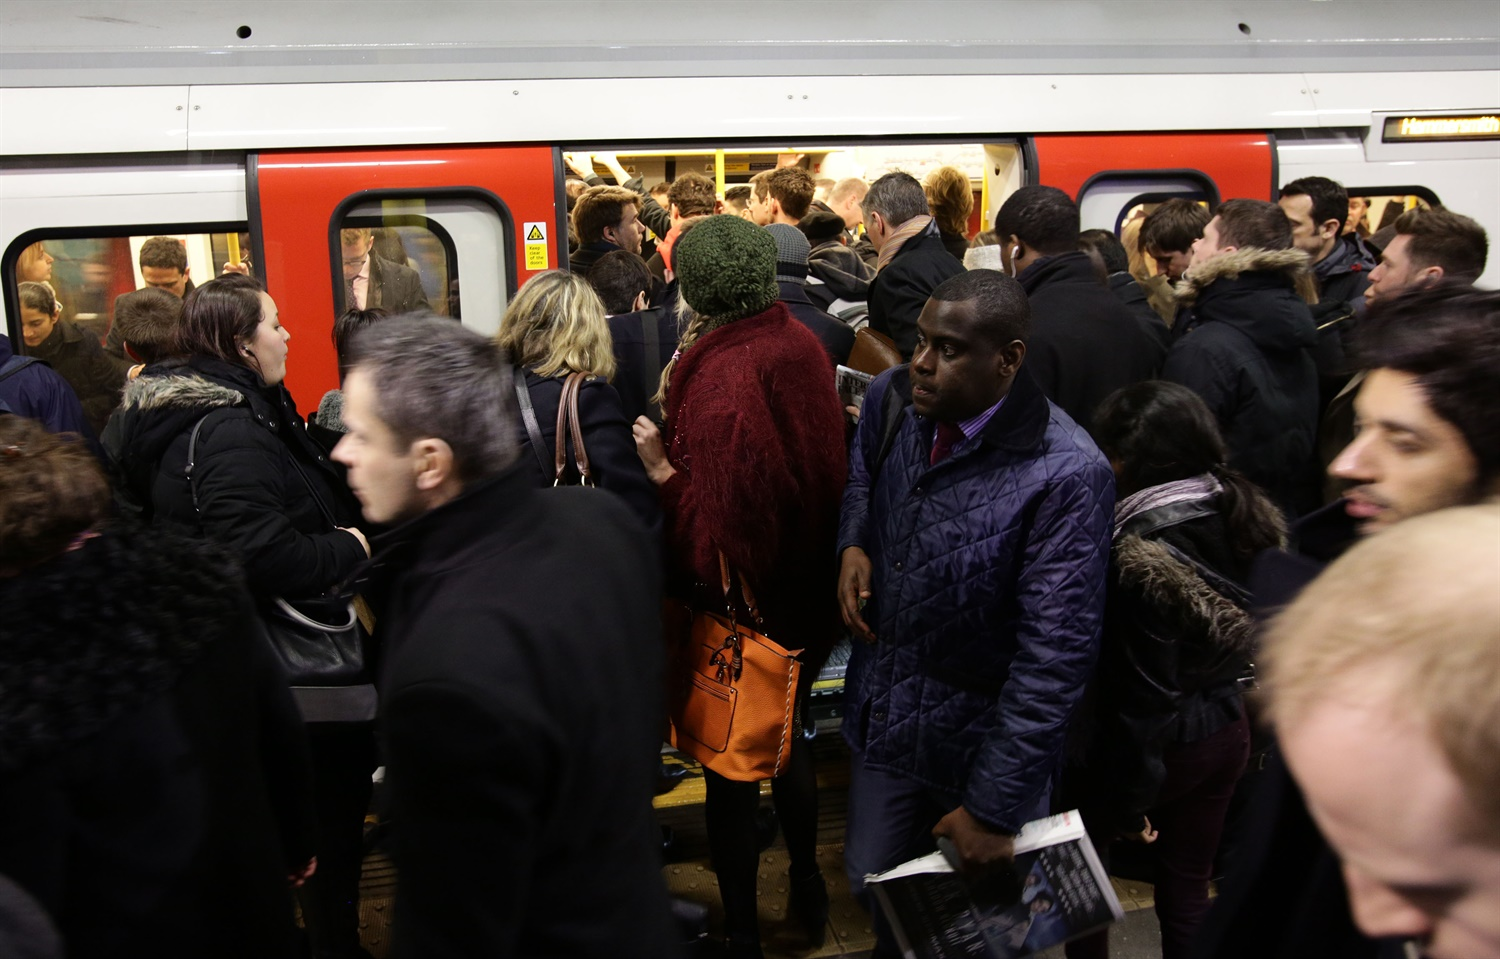 TfL seeks bidders for Bakerloo & Central line passenger information systems